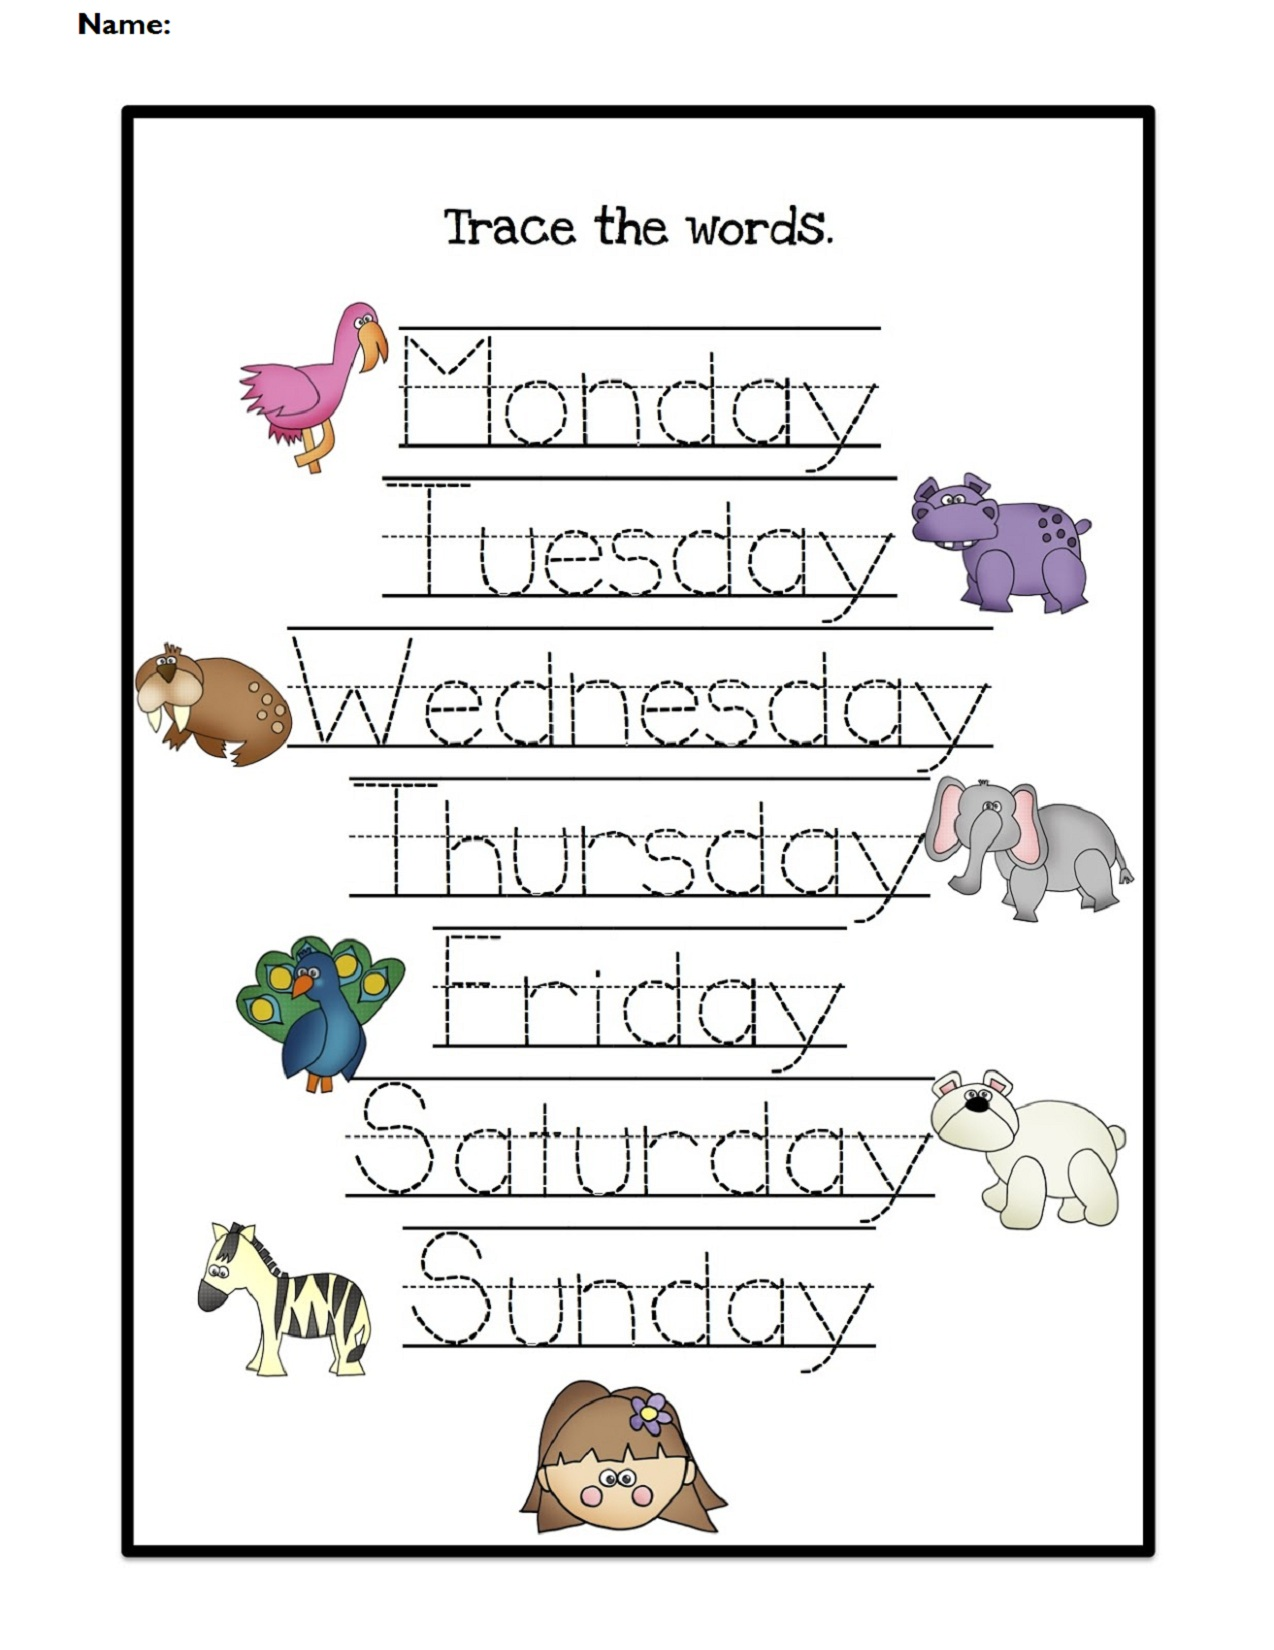 Days of the Week Worksheets Trace the Words